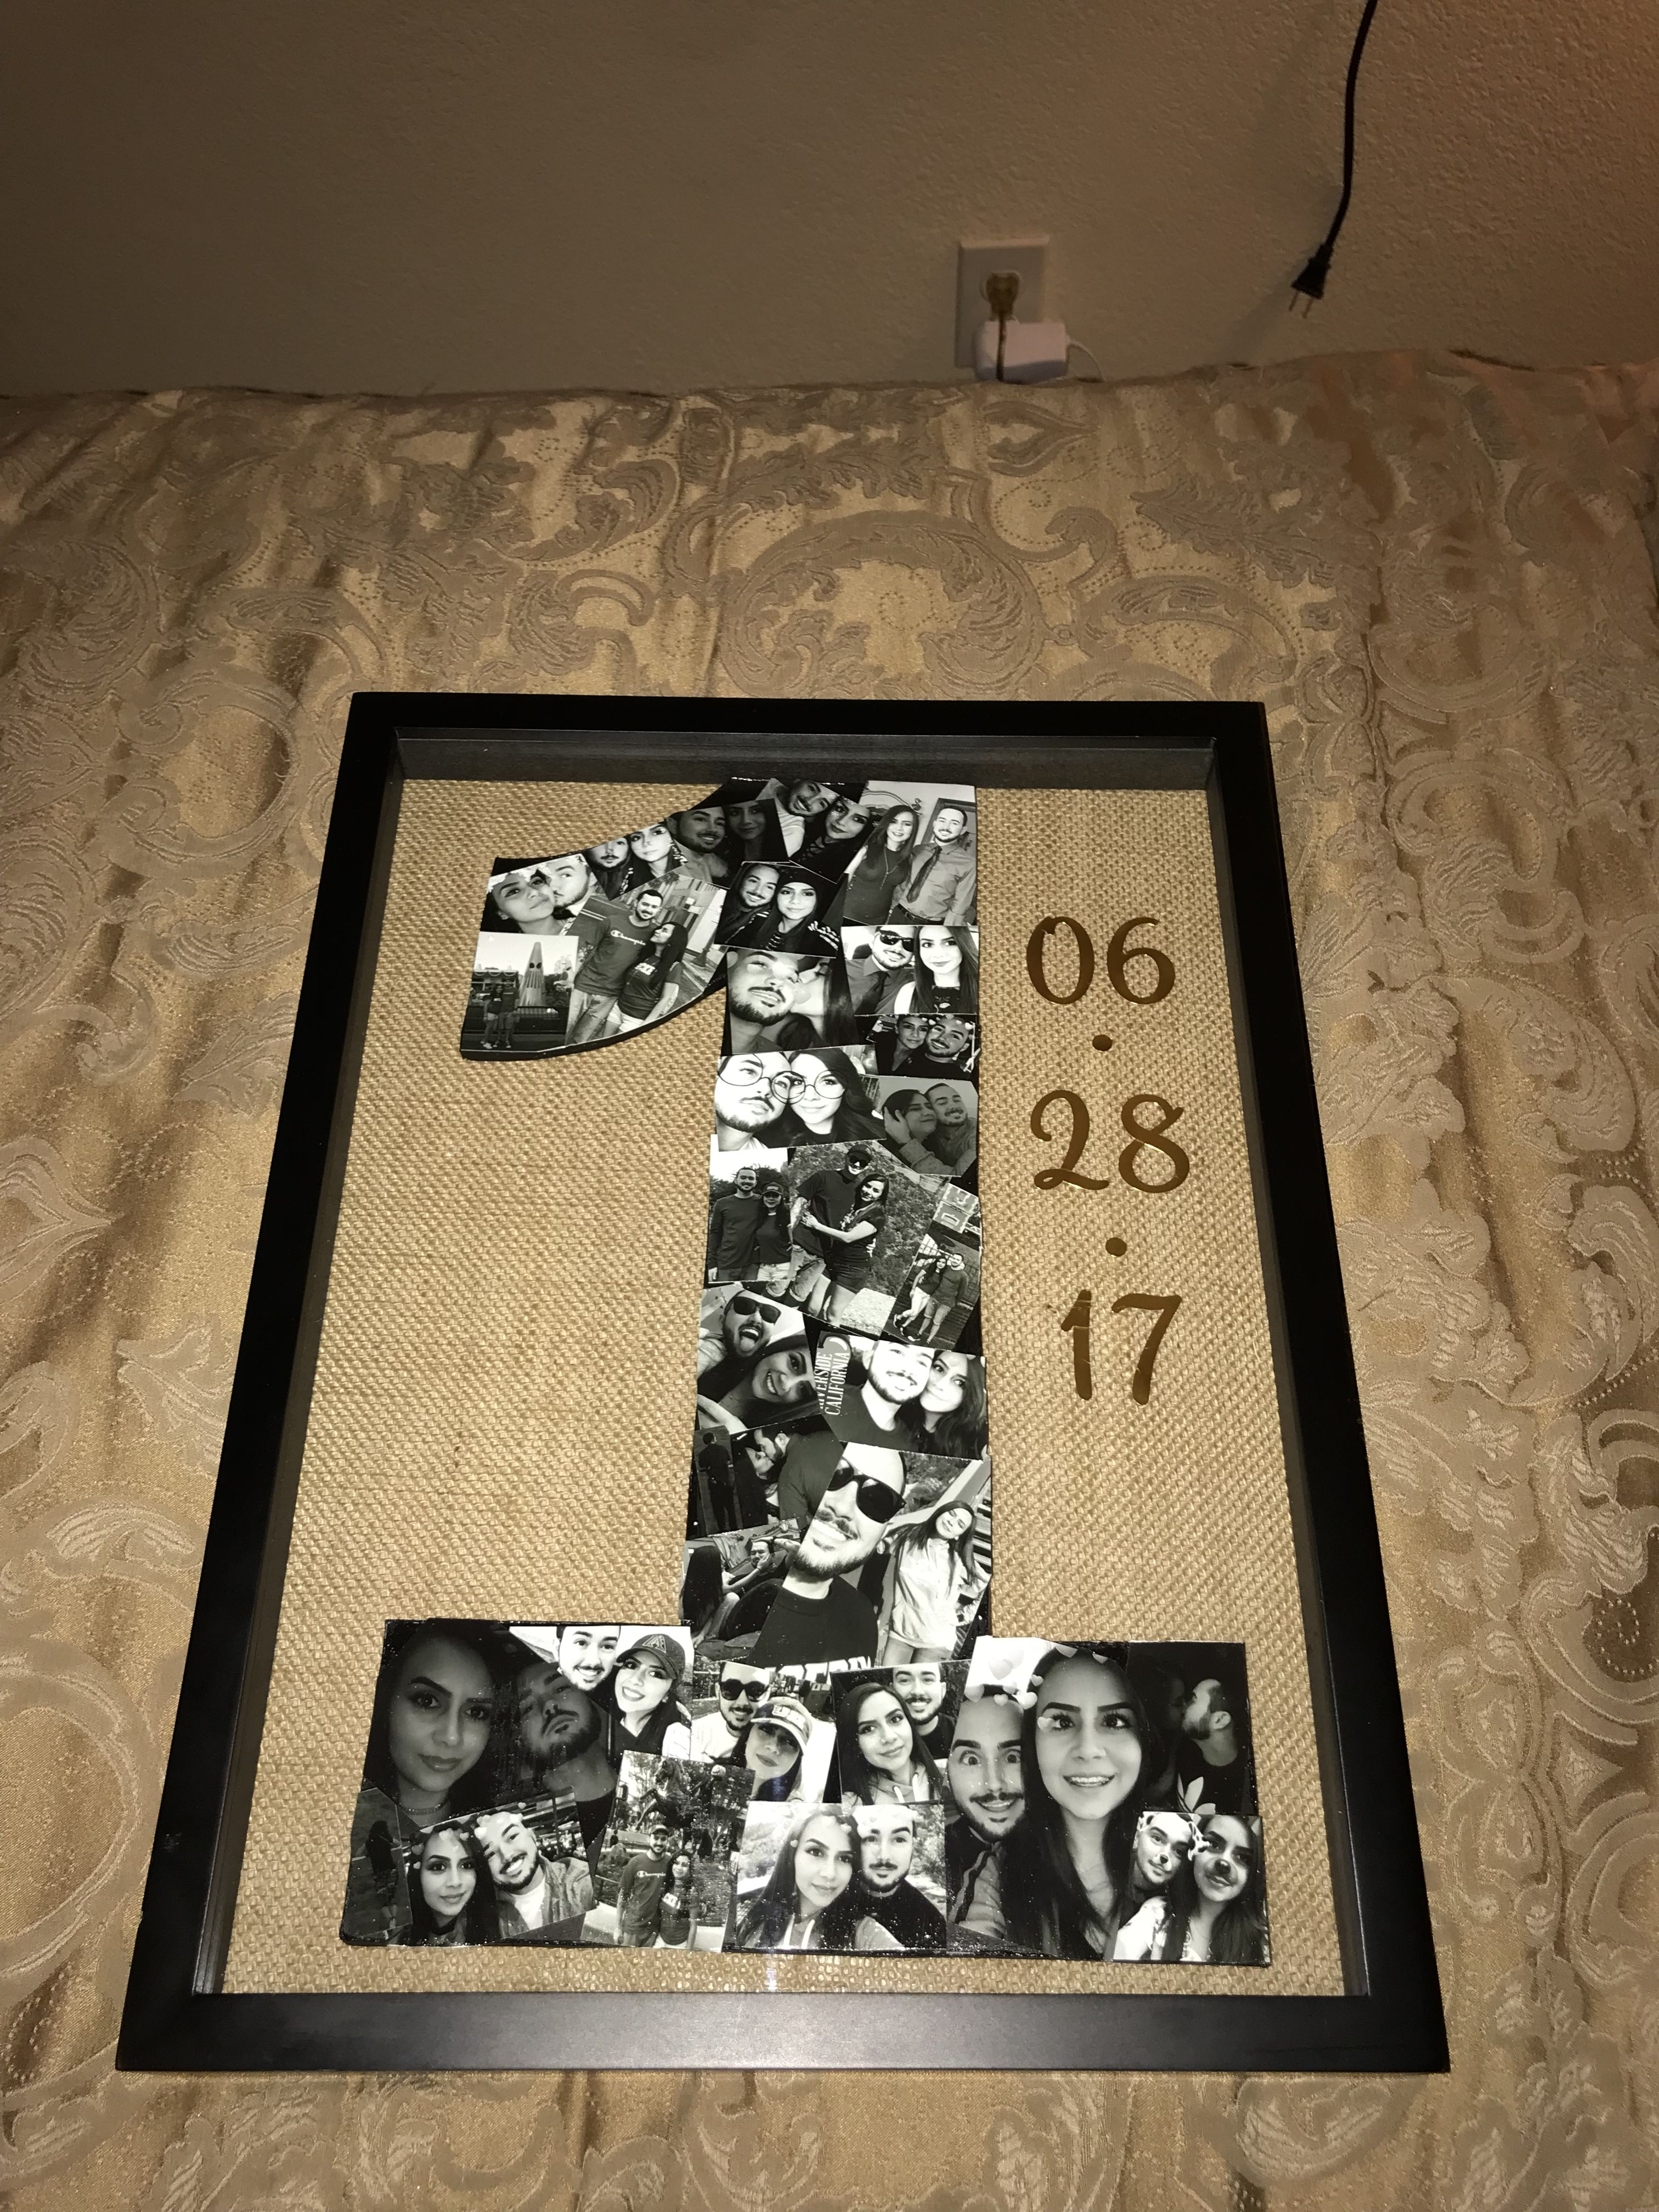 Diy Anniversary Gift I Made For My Boyfriend For Our One Year Diy Anniversary Gift Diy Gifts For Him Handmade Gifts Diy